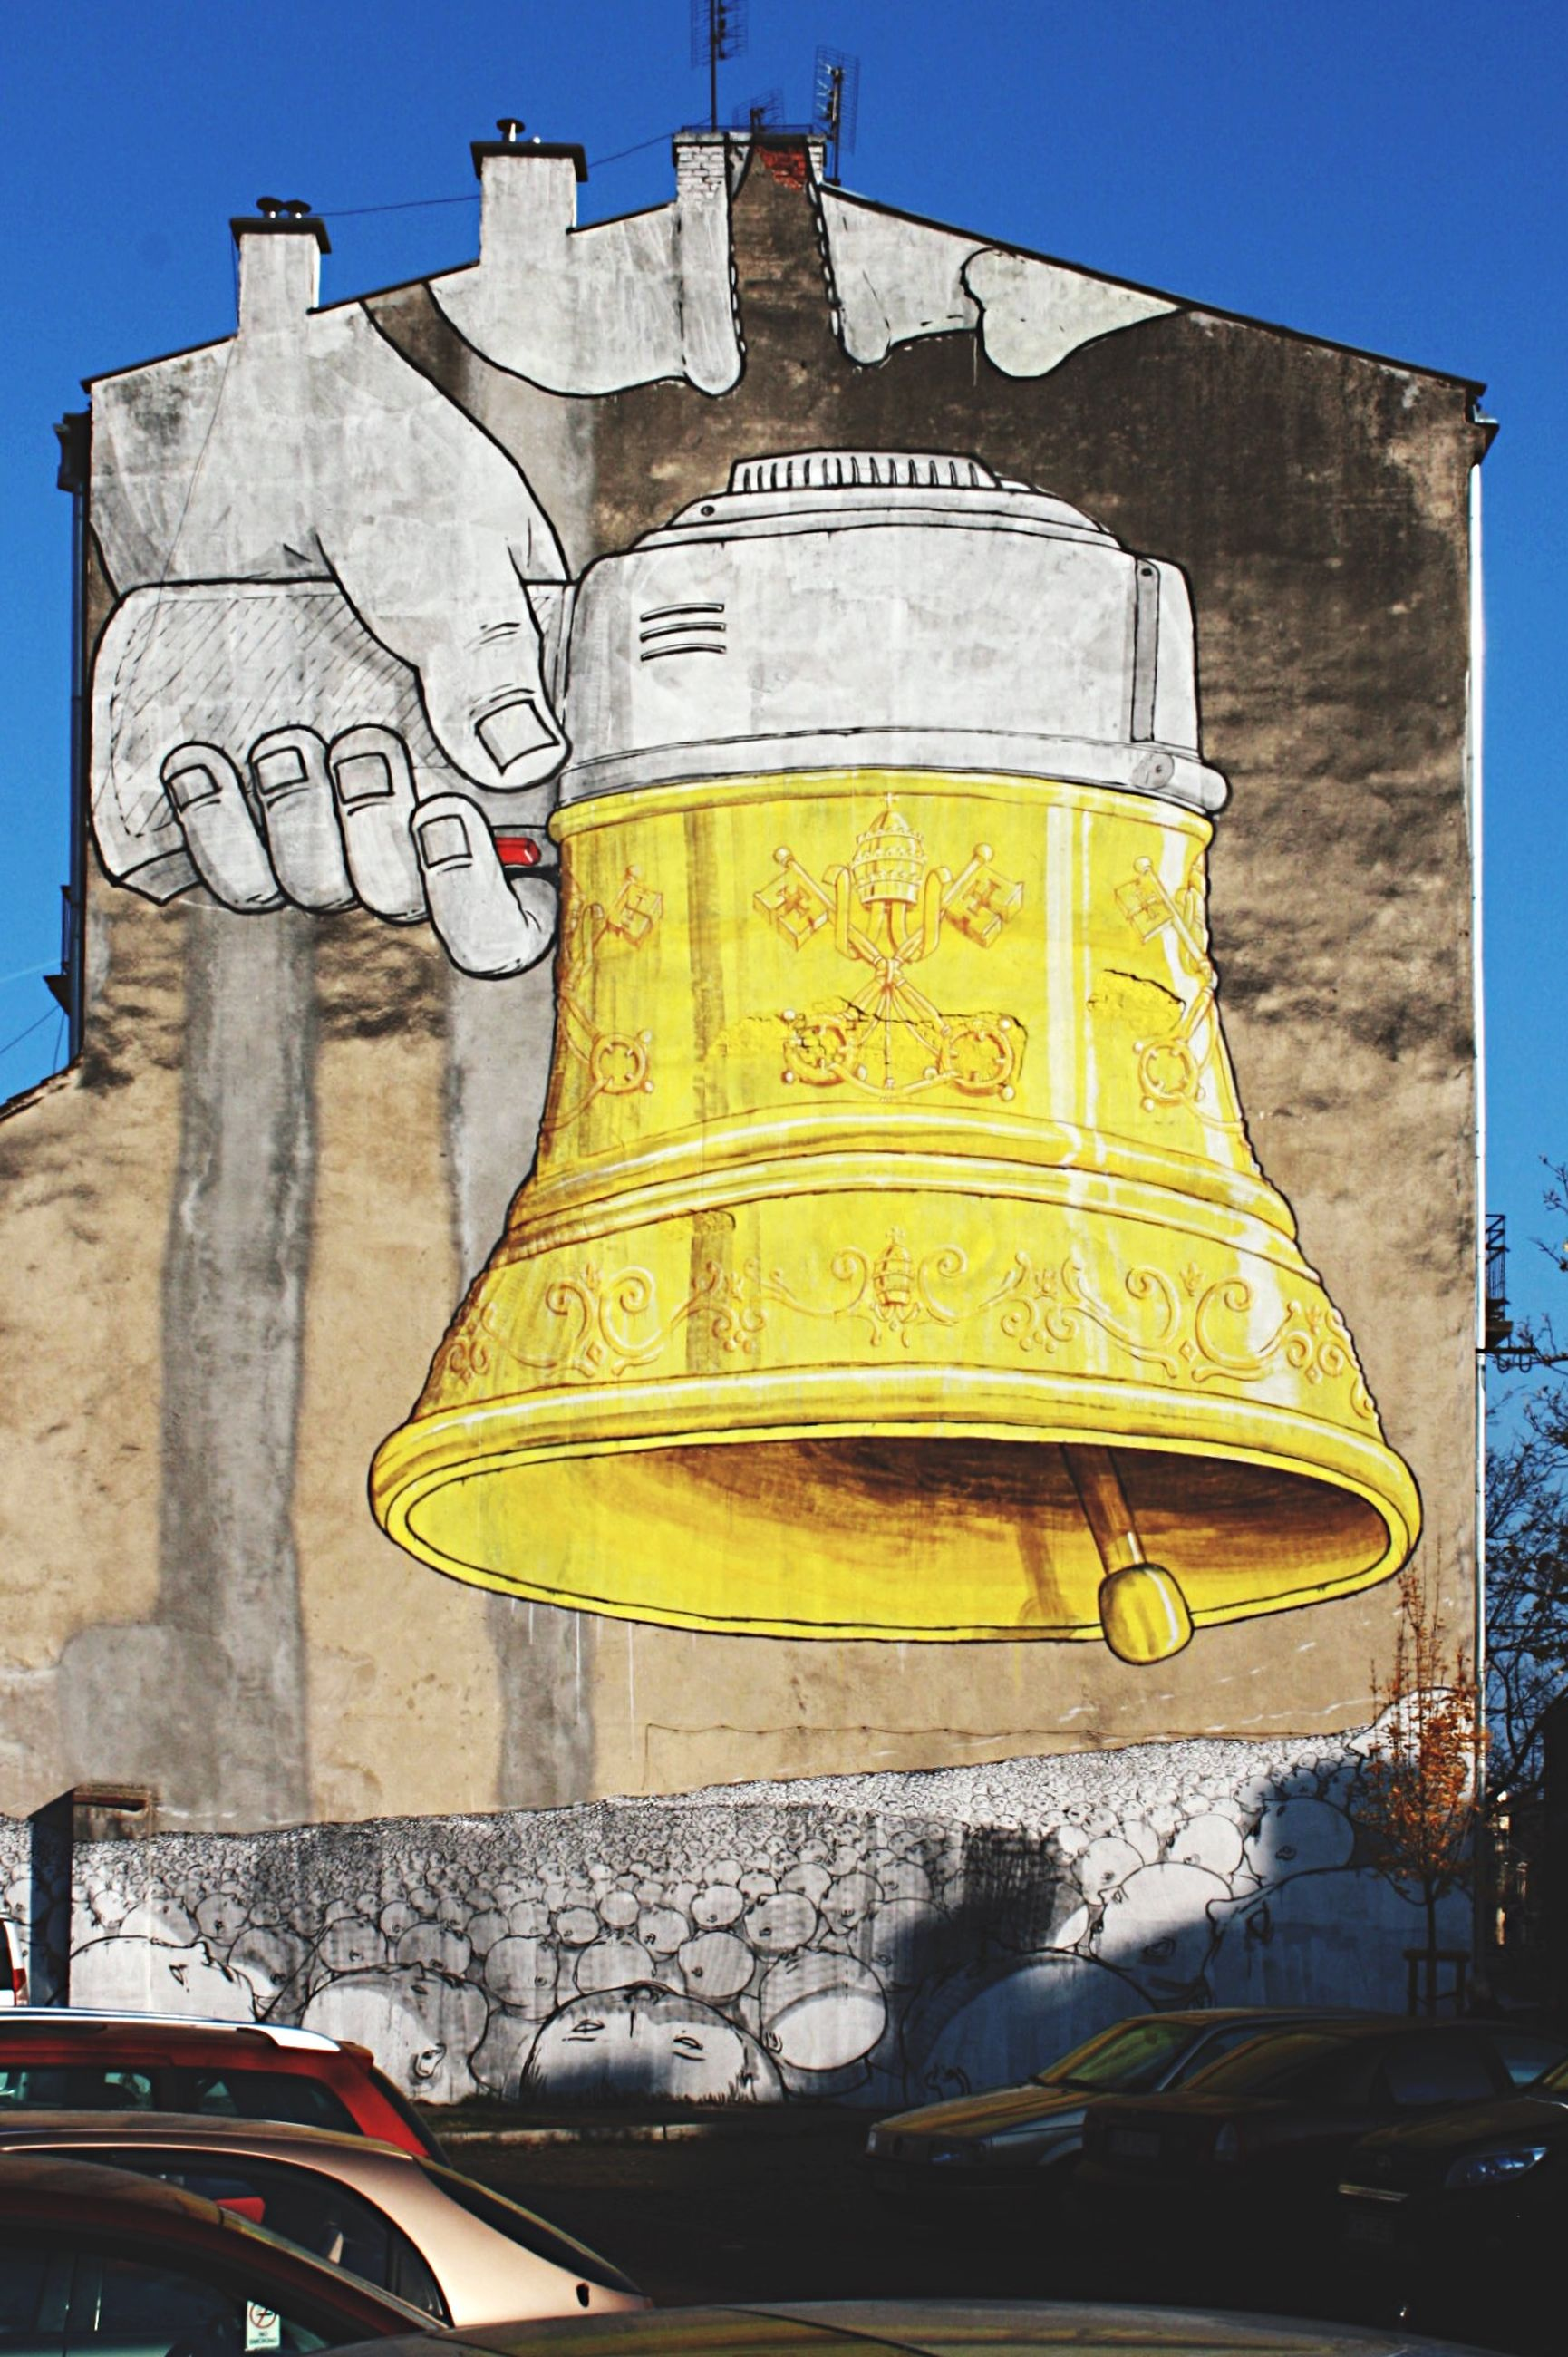 architecture, built structure, building exterior, low angle view, clear sky, text, blue, western script, art, communication, art and craft, yellow, graffiti, creativity, sunlight, human representation, day, outdoors, history, no people